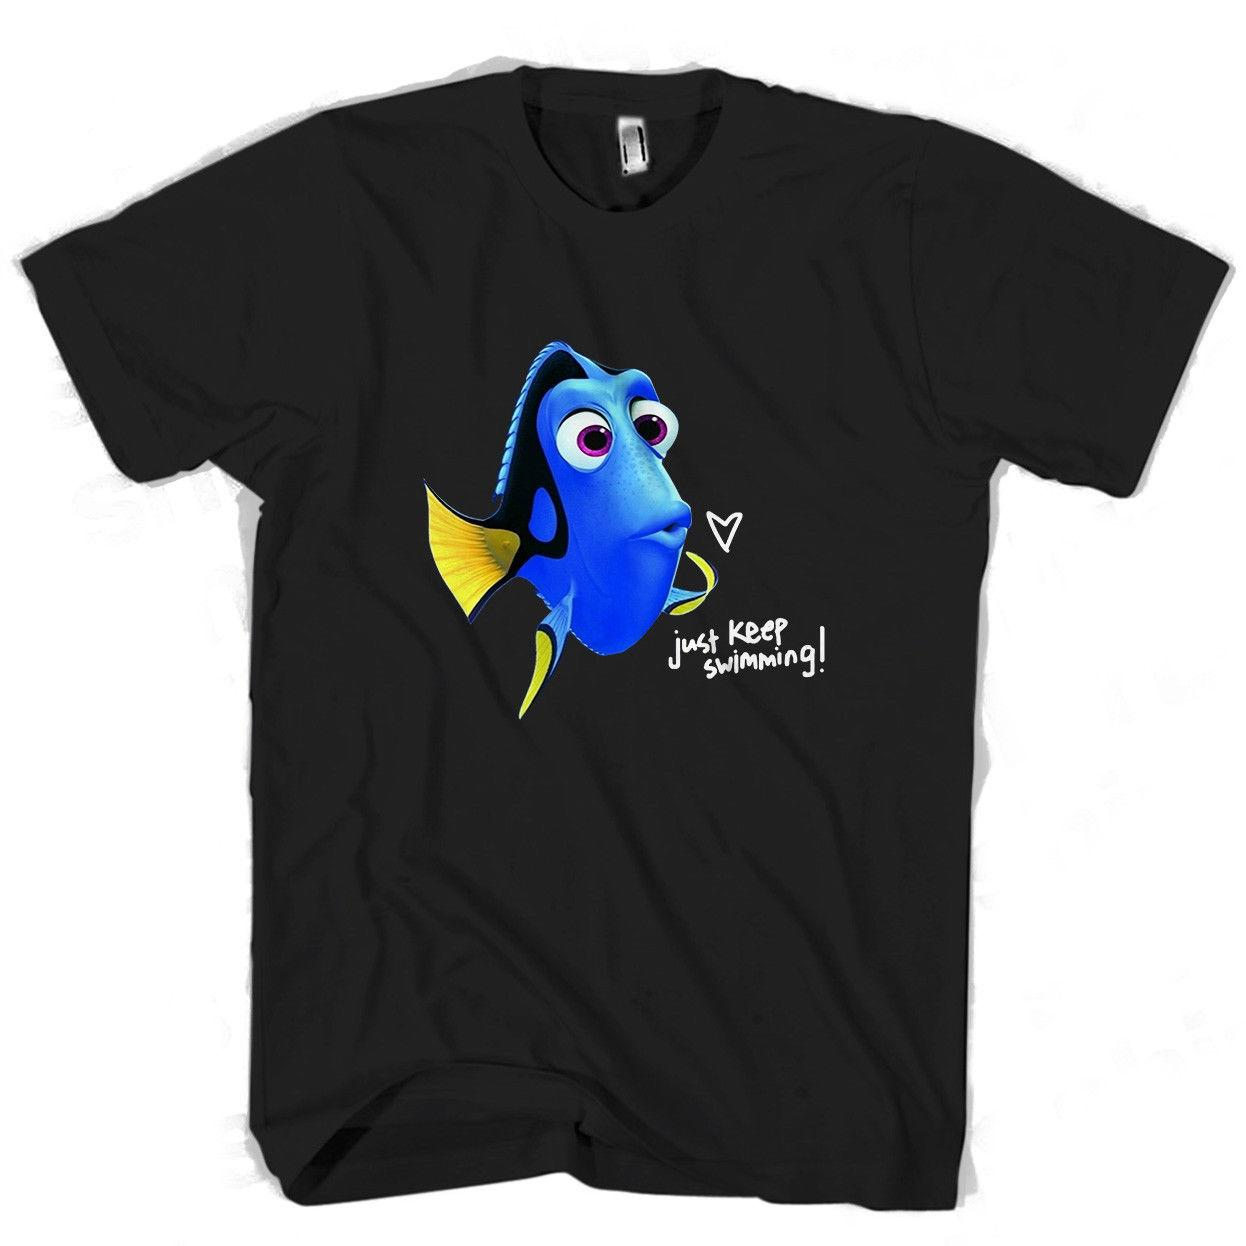 2d9f4016 Finding Dory Just Keep Swimming Men's / Women's T Shirt knitted comfortable  fabric top Quality Cotton street style men t-shirt